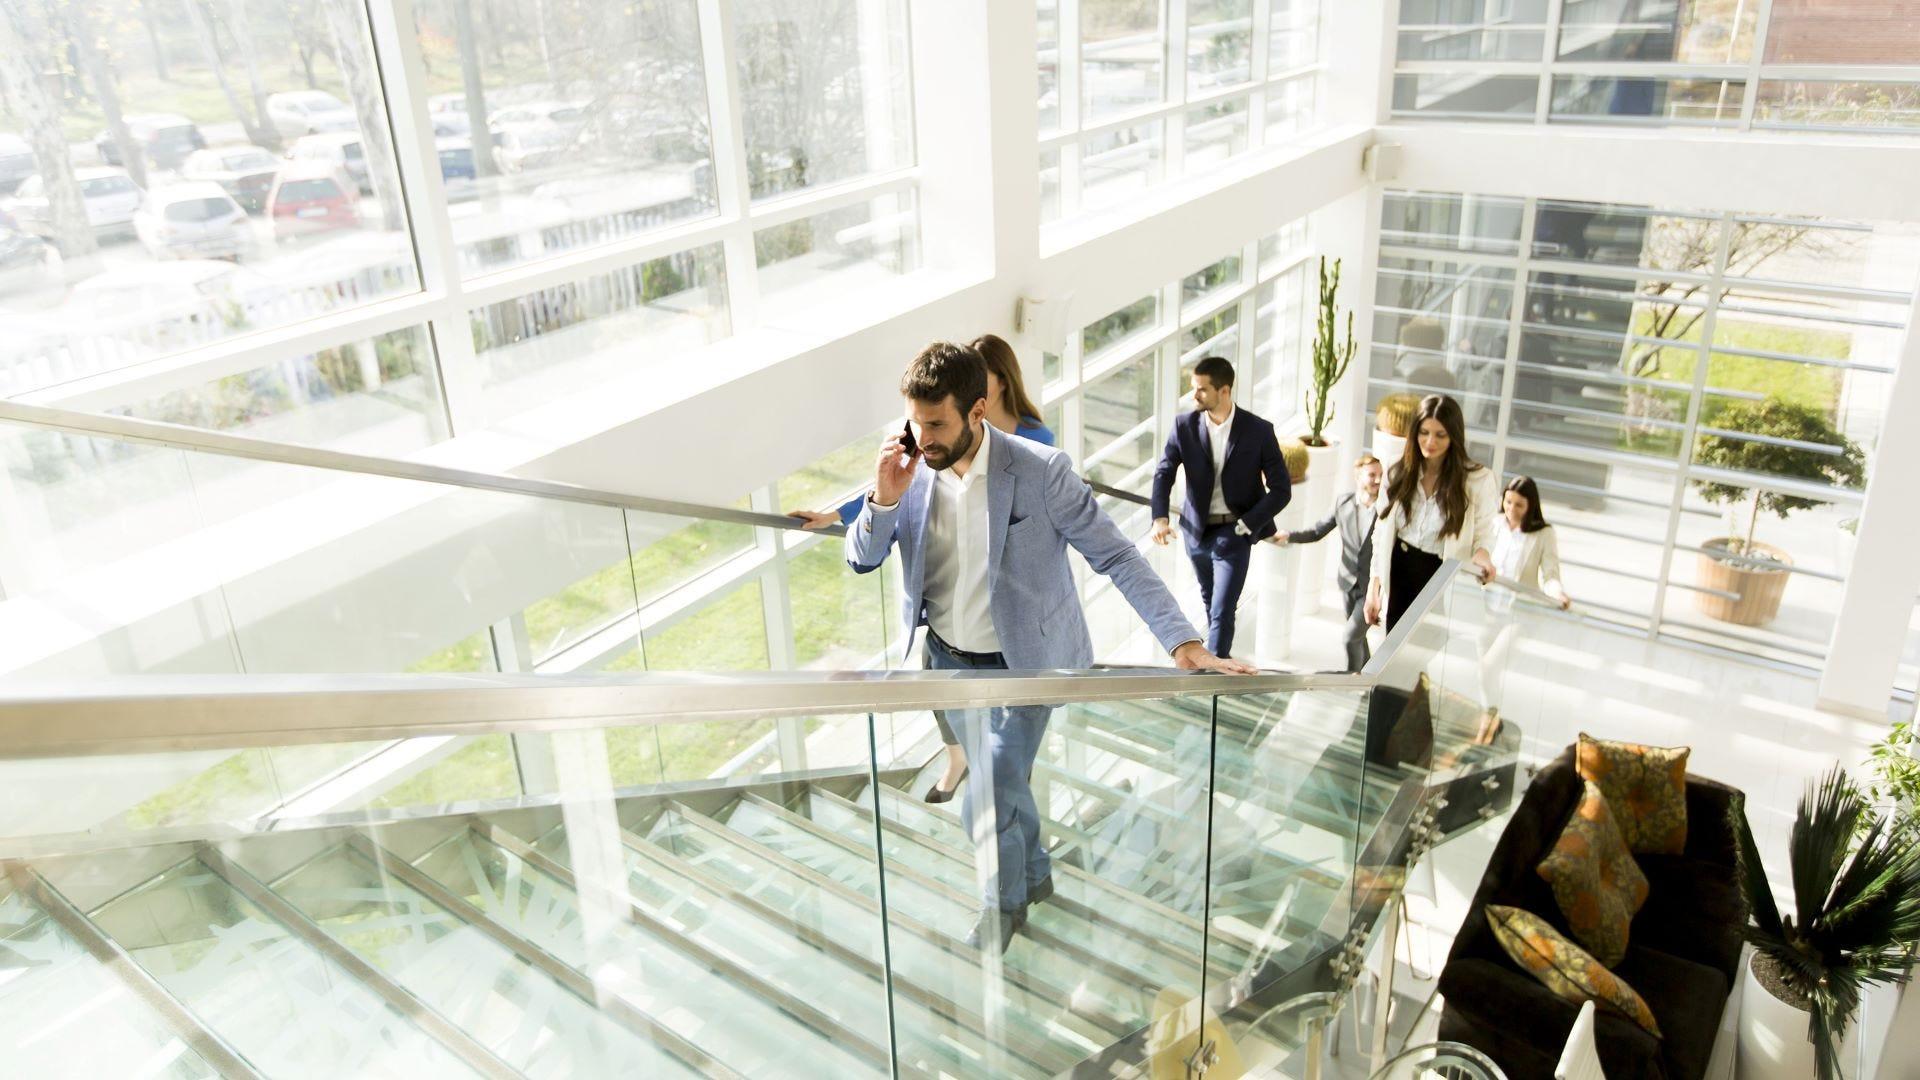 People walking up stairs in an office building.